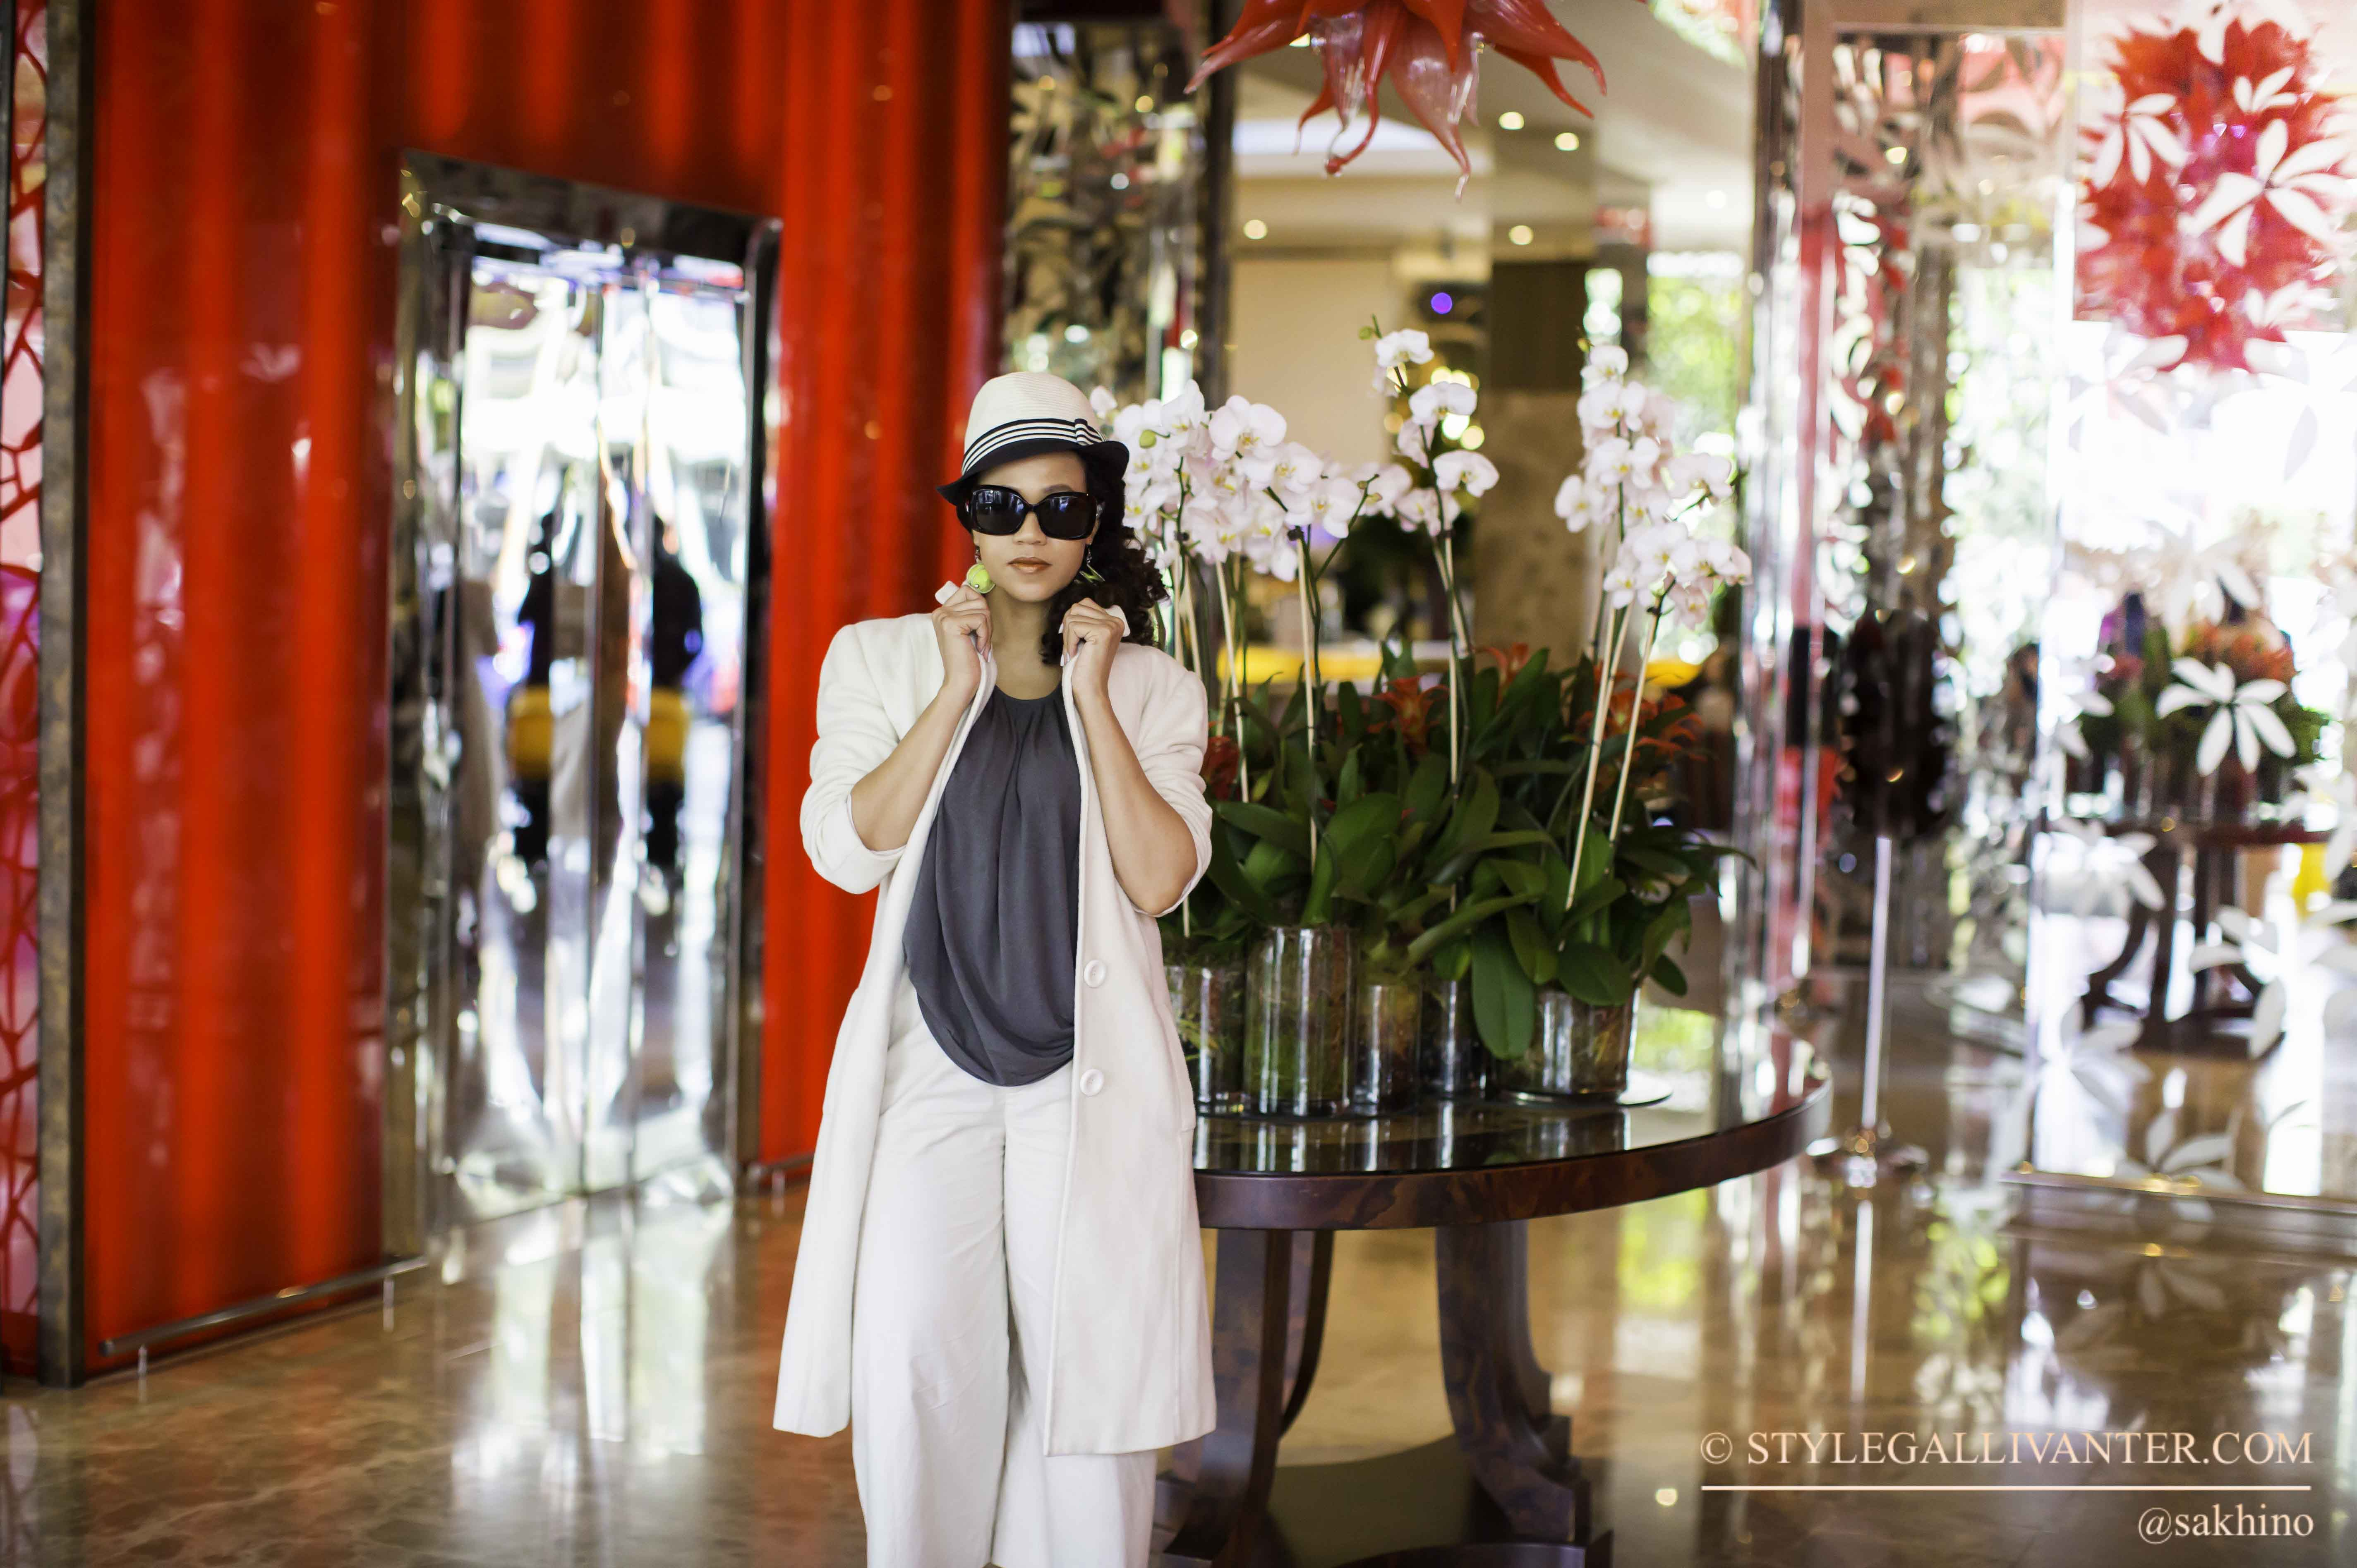 tp-mummy-bloggers-melbourne-australia_stylish-mummy-bloggers-2015_trilby_Miranda-StyleGallivanter.com_Photo-Credit-Andrew-Kibuka_copyright-2015-5